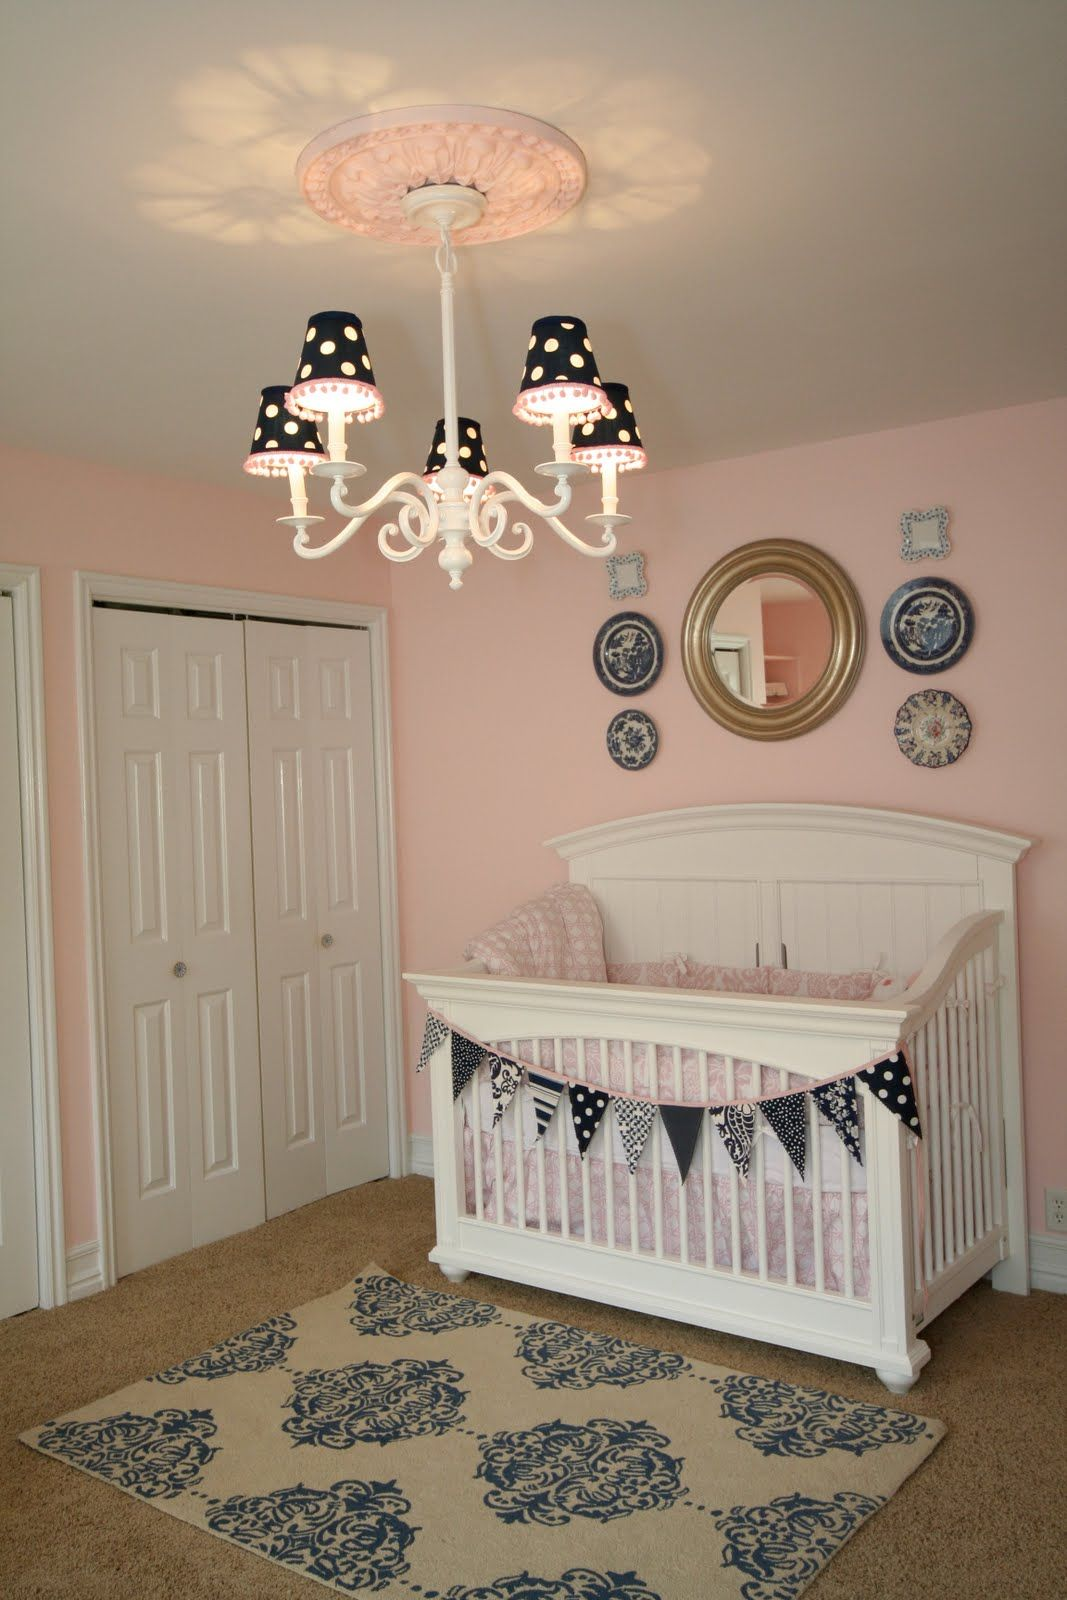 Inspiring Sophisticated Nursery Room Ideas Lovely Light Pink With Large White Baby Crib And Black Polkadot Chandelier Lampshade Also Damask